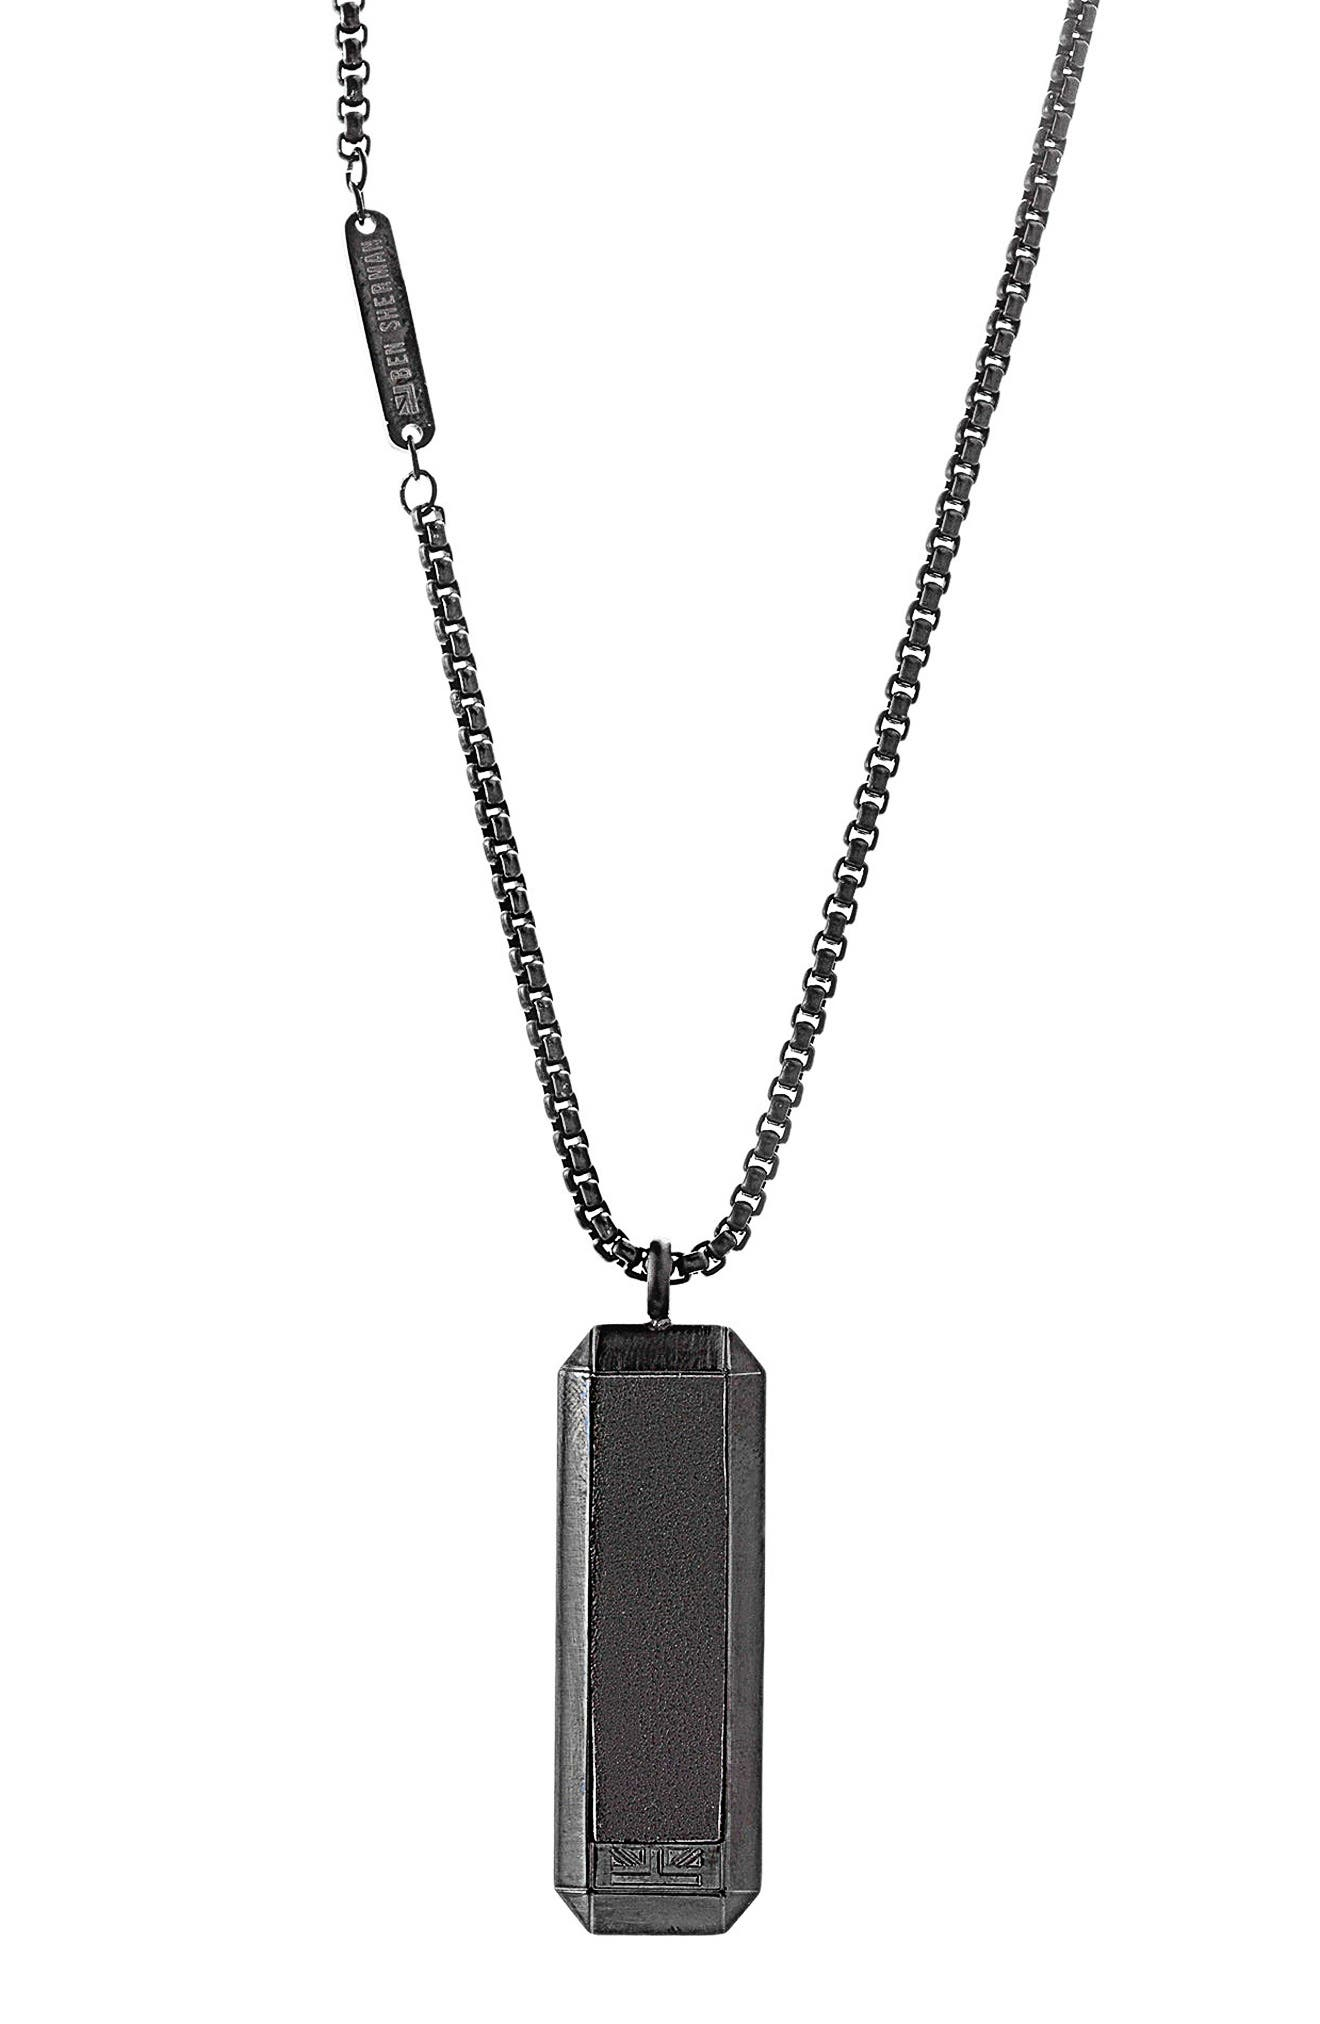 Ben Sherman Leather Dog Tag Necklace